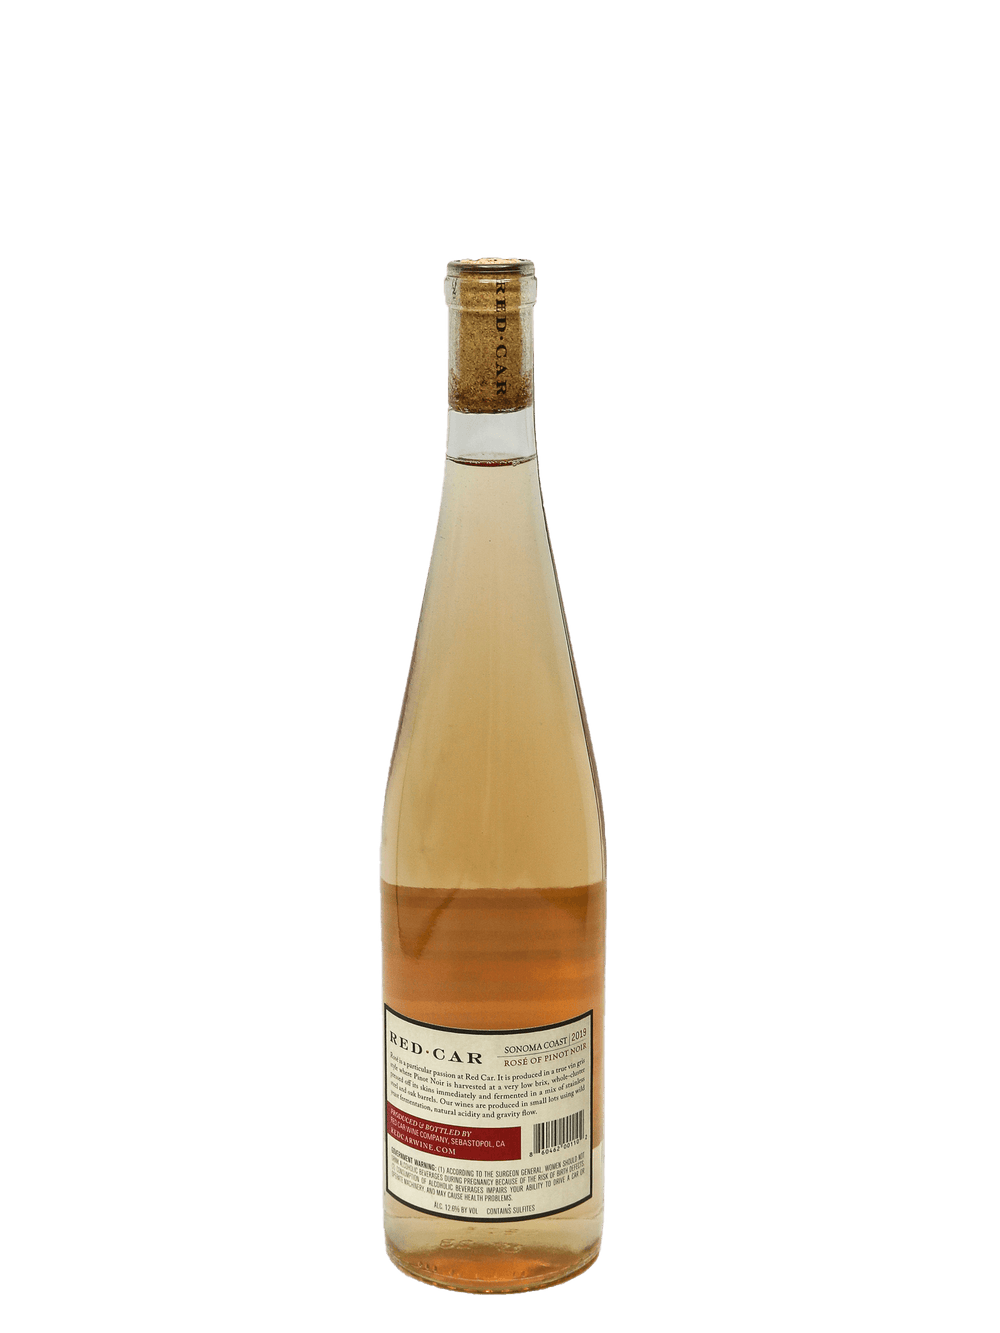 2019 Red Car Sonoma Coast Rose of Pinot Noir